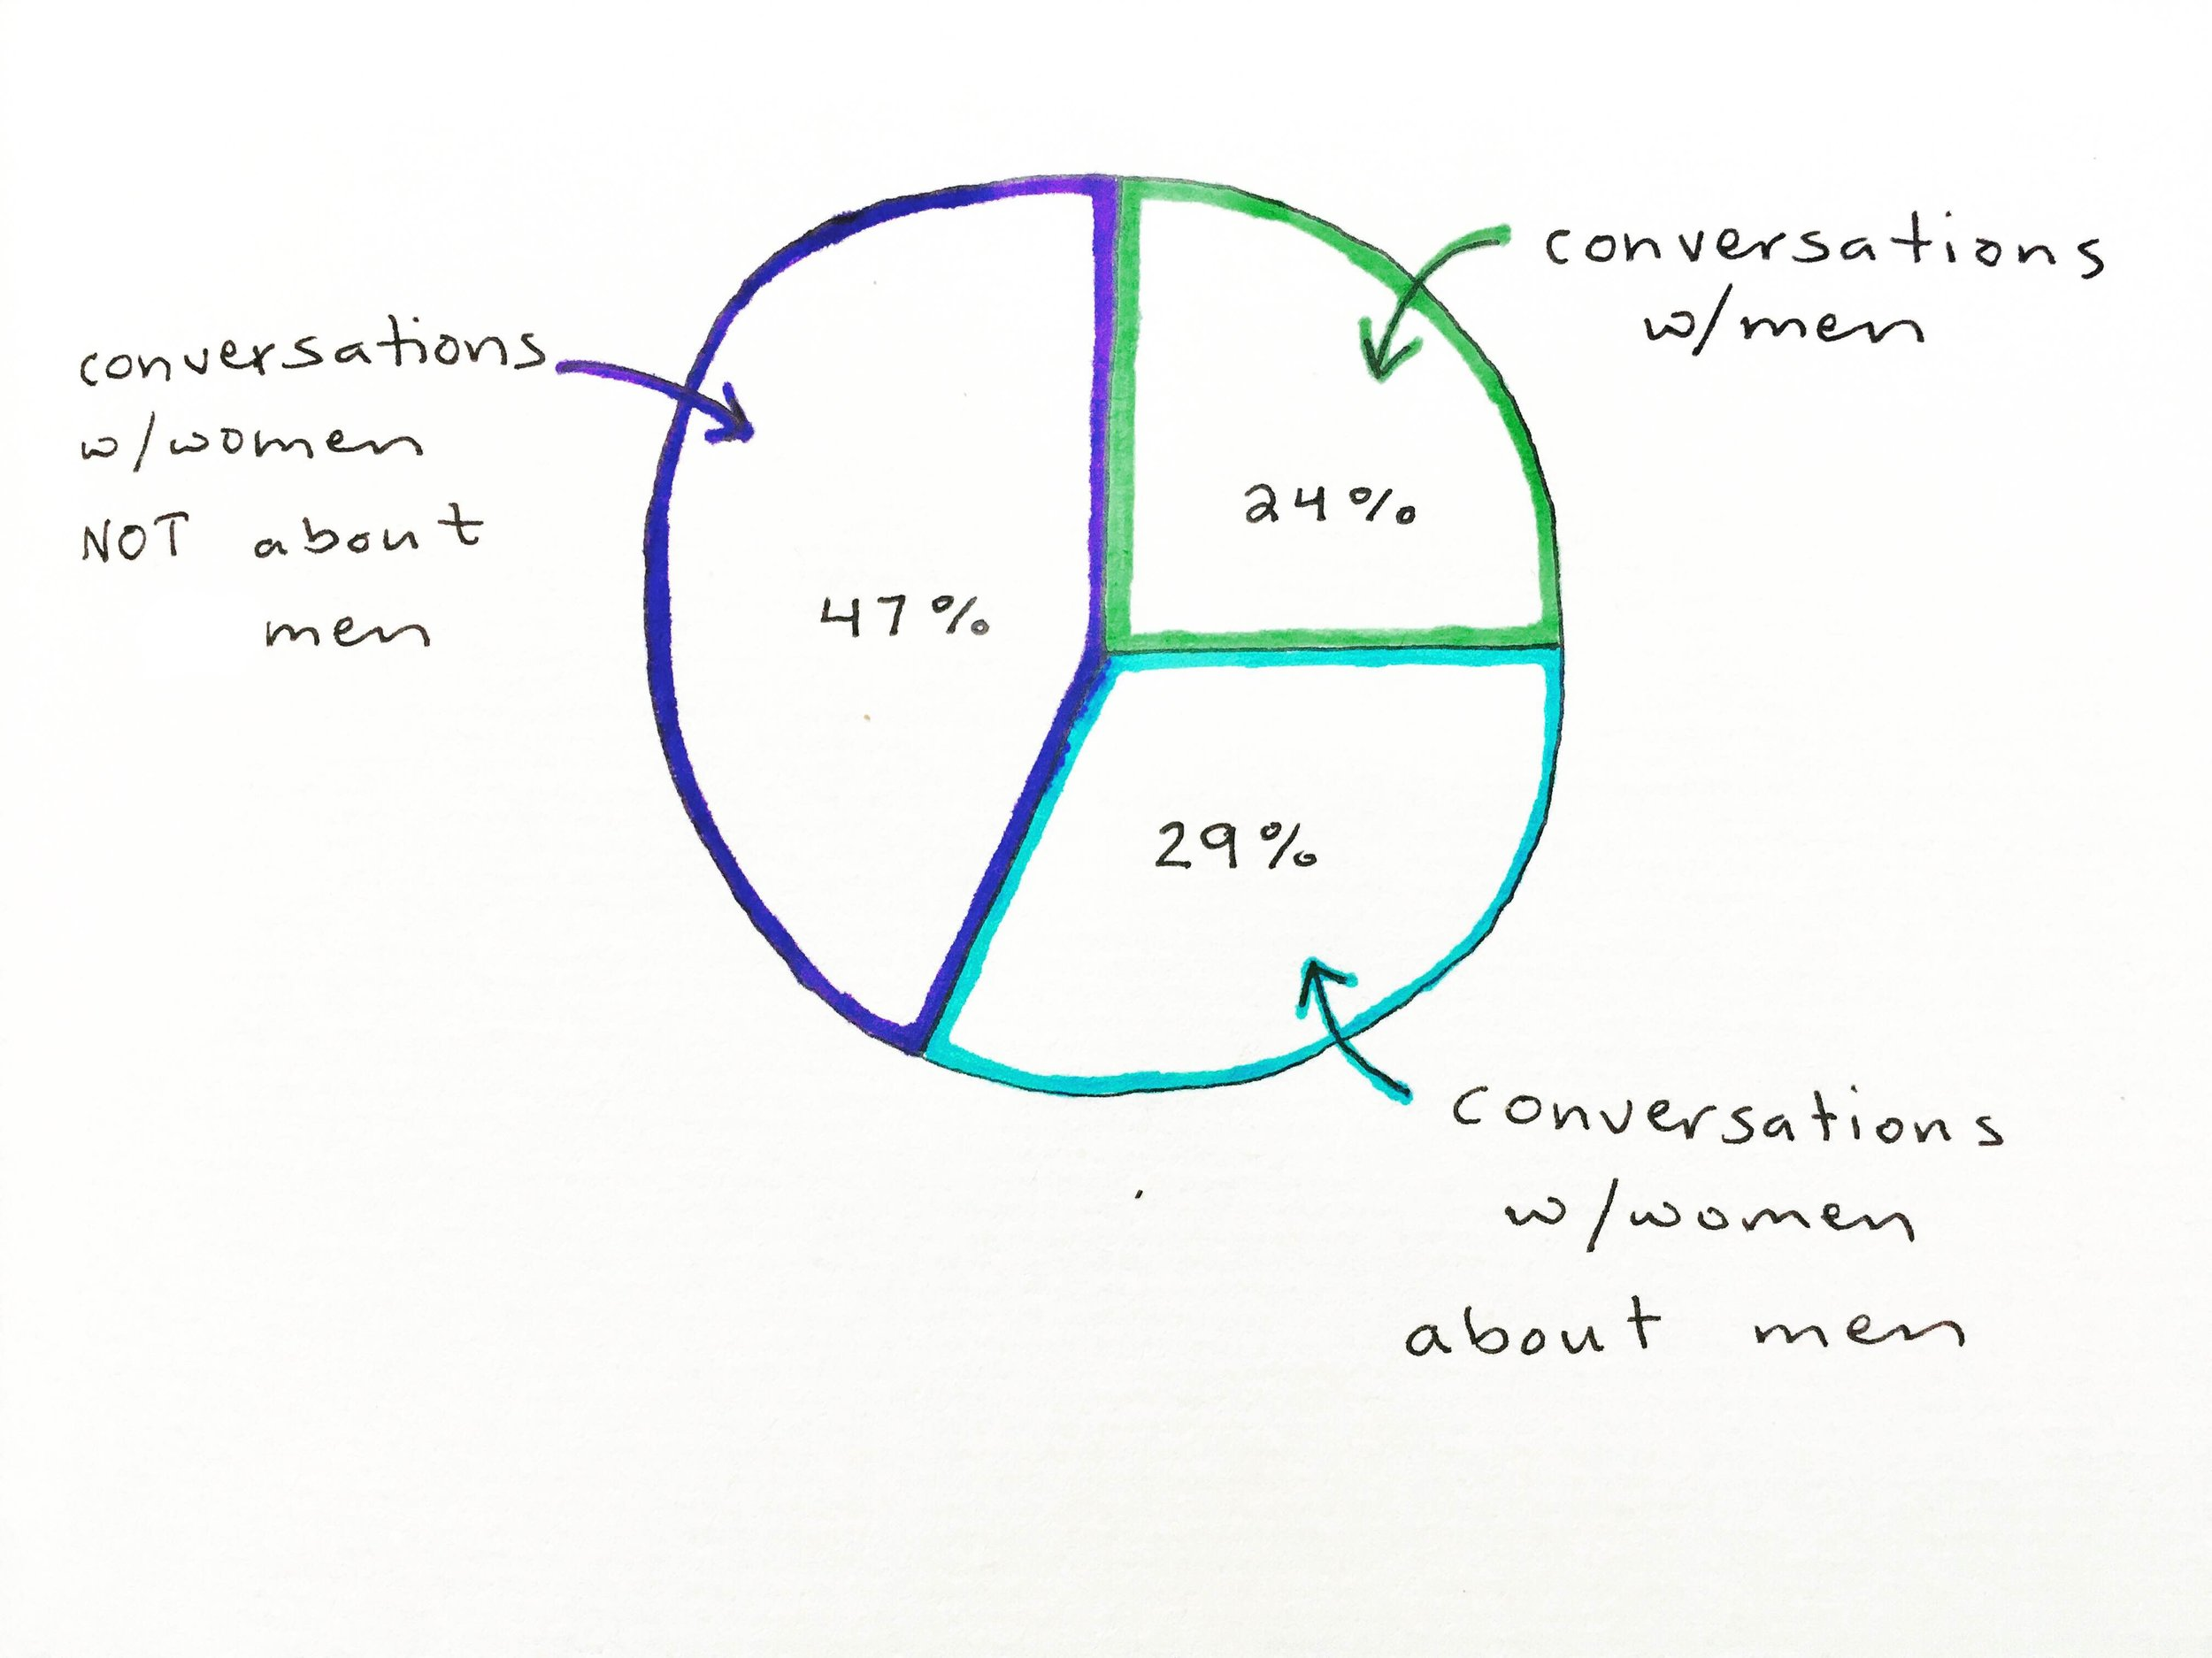 A mis-shapen pie chart illustrating how my conversations went for two weeks.